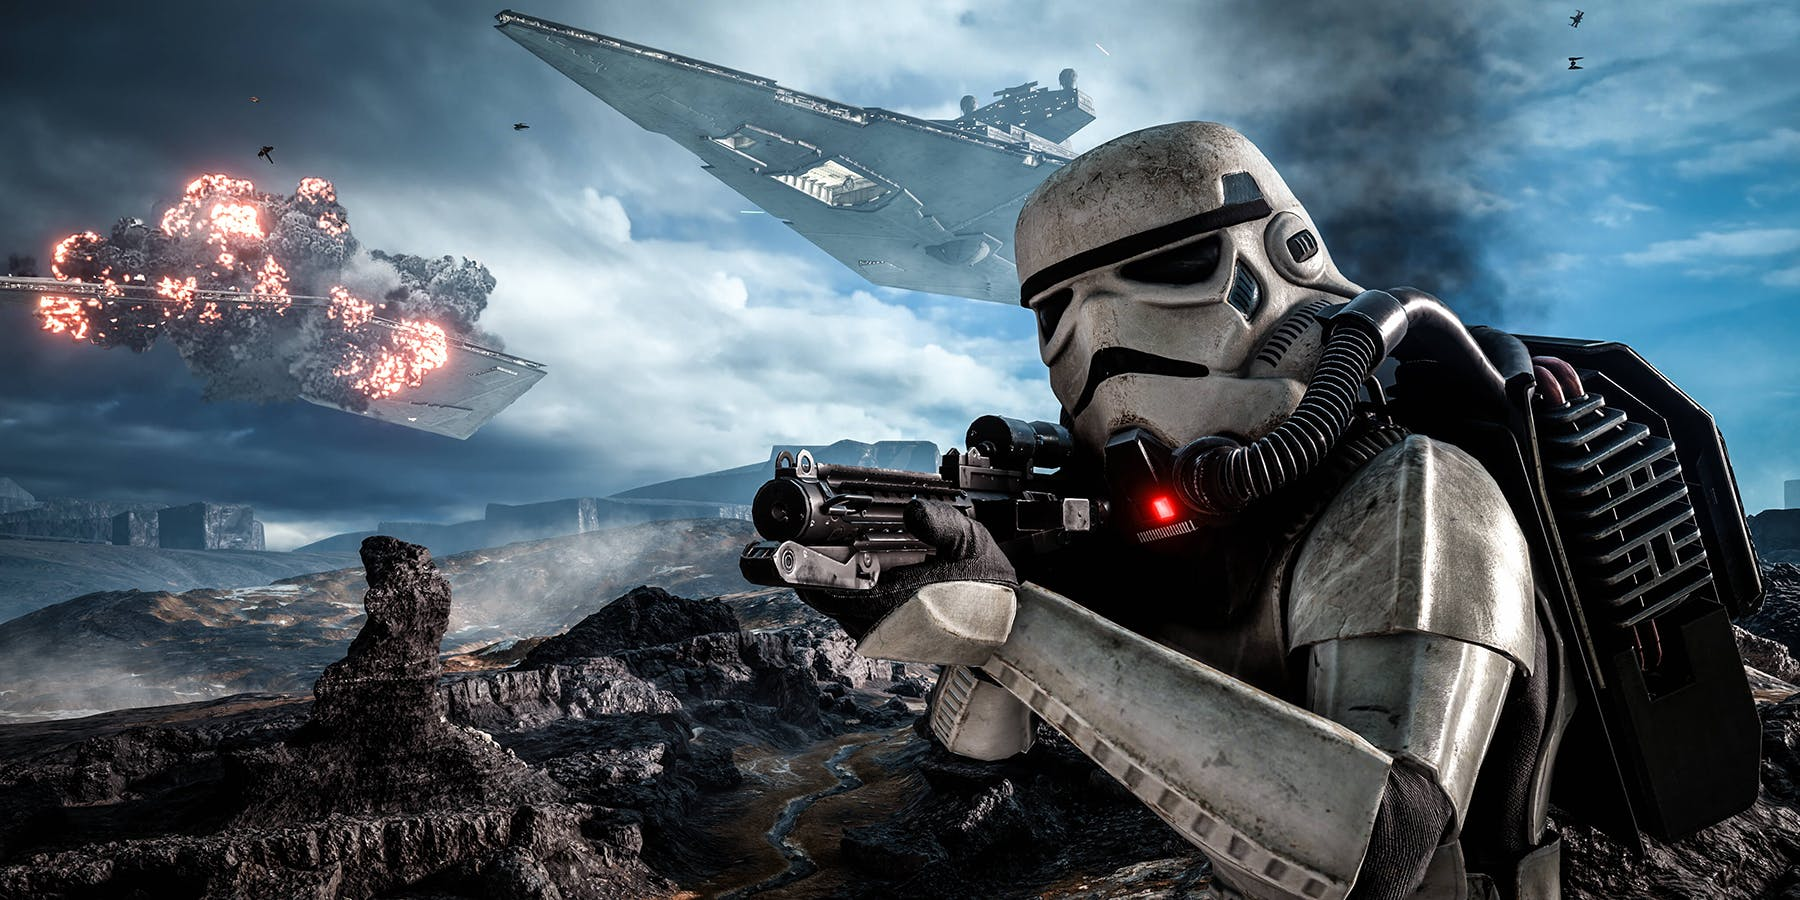 EA's Star Wars Game Will Blend Online Play And Single Player Campaign